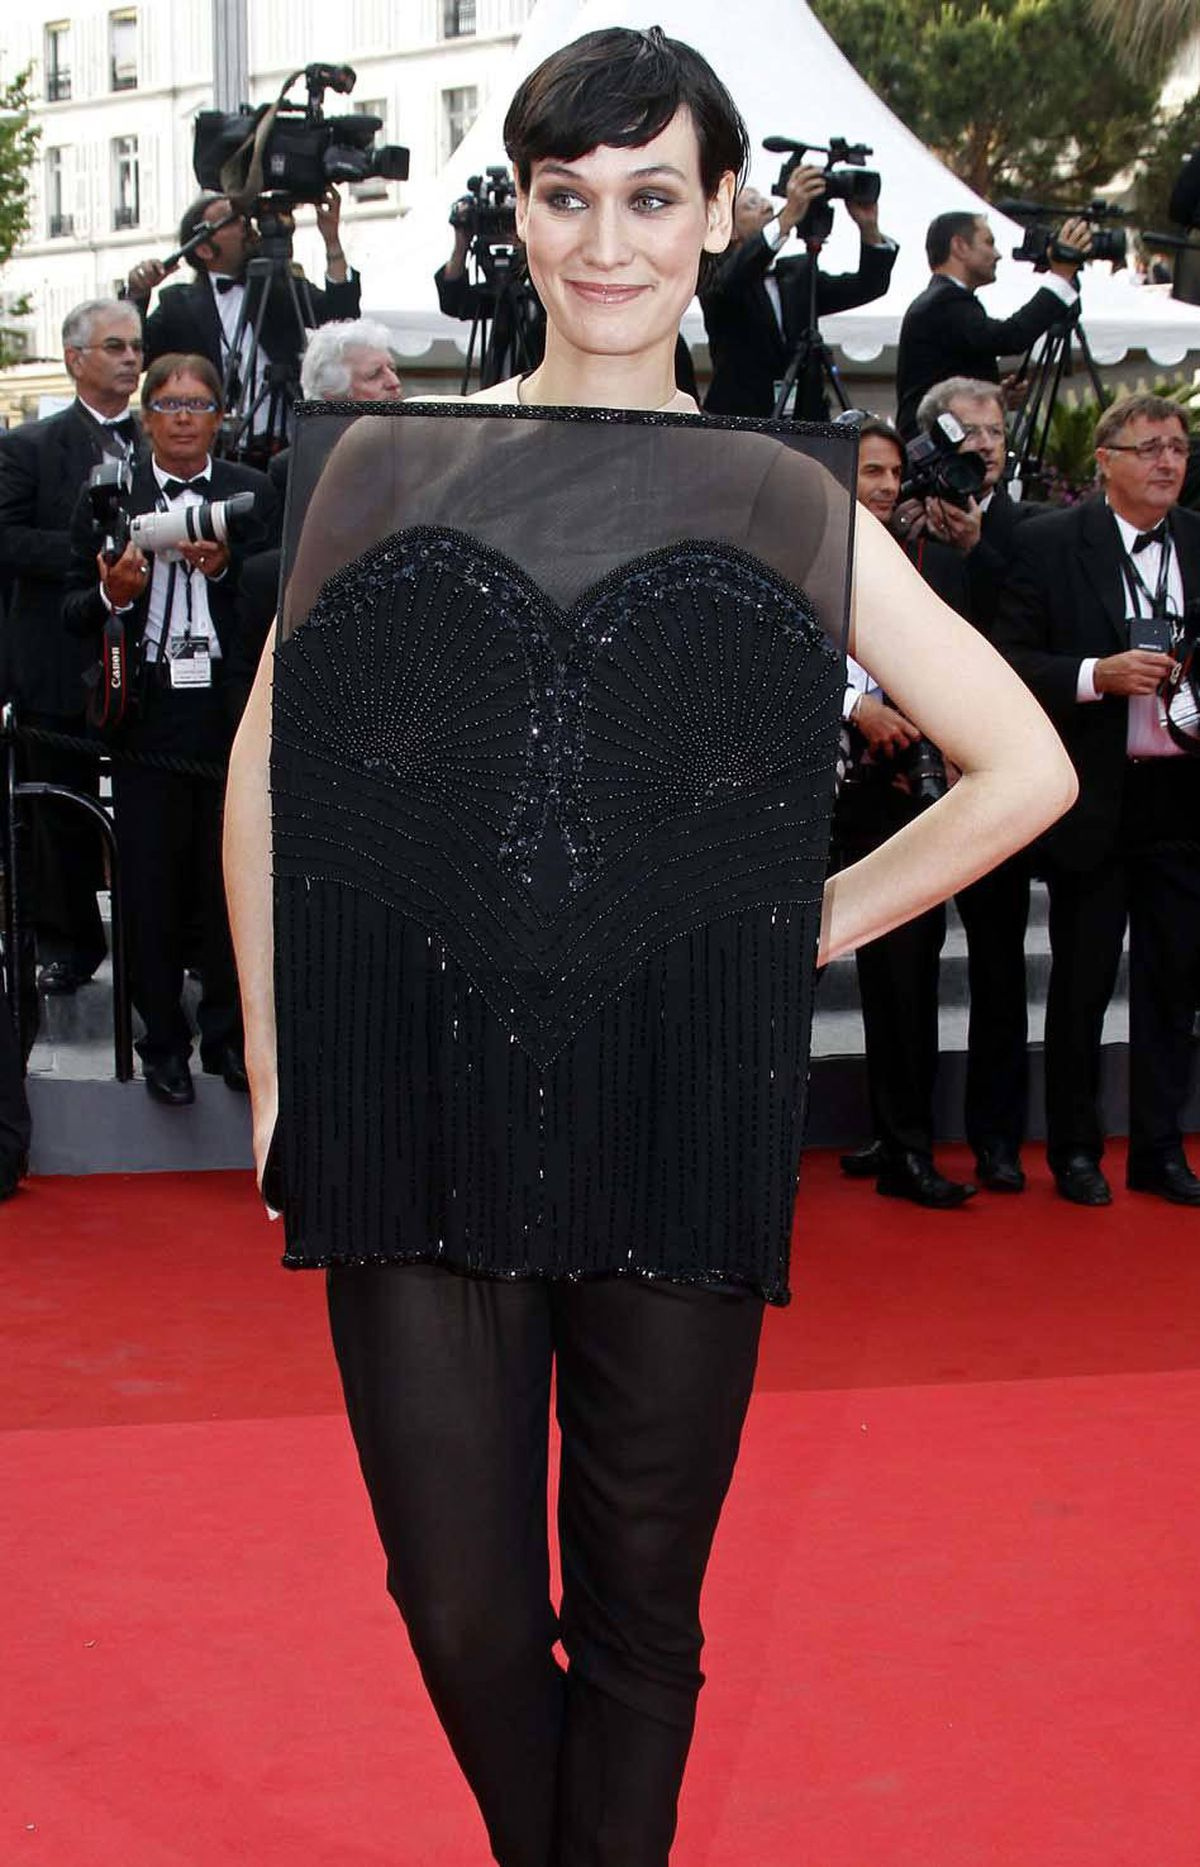 French actress Clotilde Hesme is your French Actress of the Day for wearing an outfit on the red carpet that mimics the stage curtain, thereby reminding us we are all bit players trapped in a macabre theatre of the absurd called Life from which there is no exit.